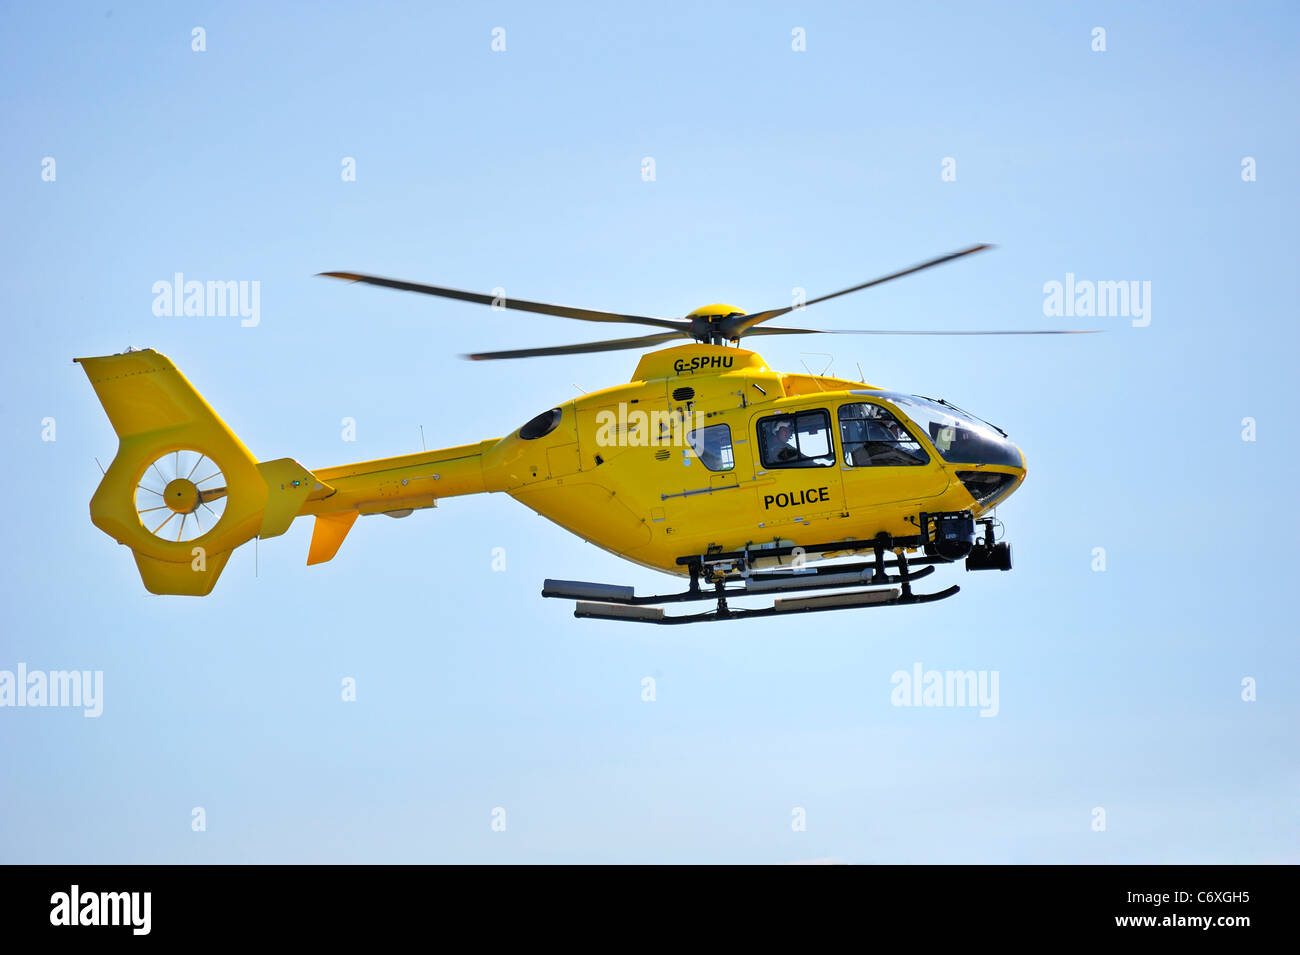 A helicopter of the Strathclyde Police force coming in to land against a clear blue sky - Stock Image